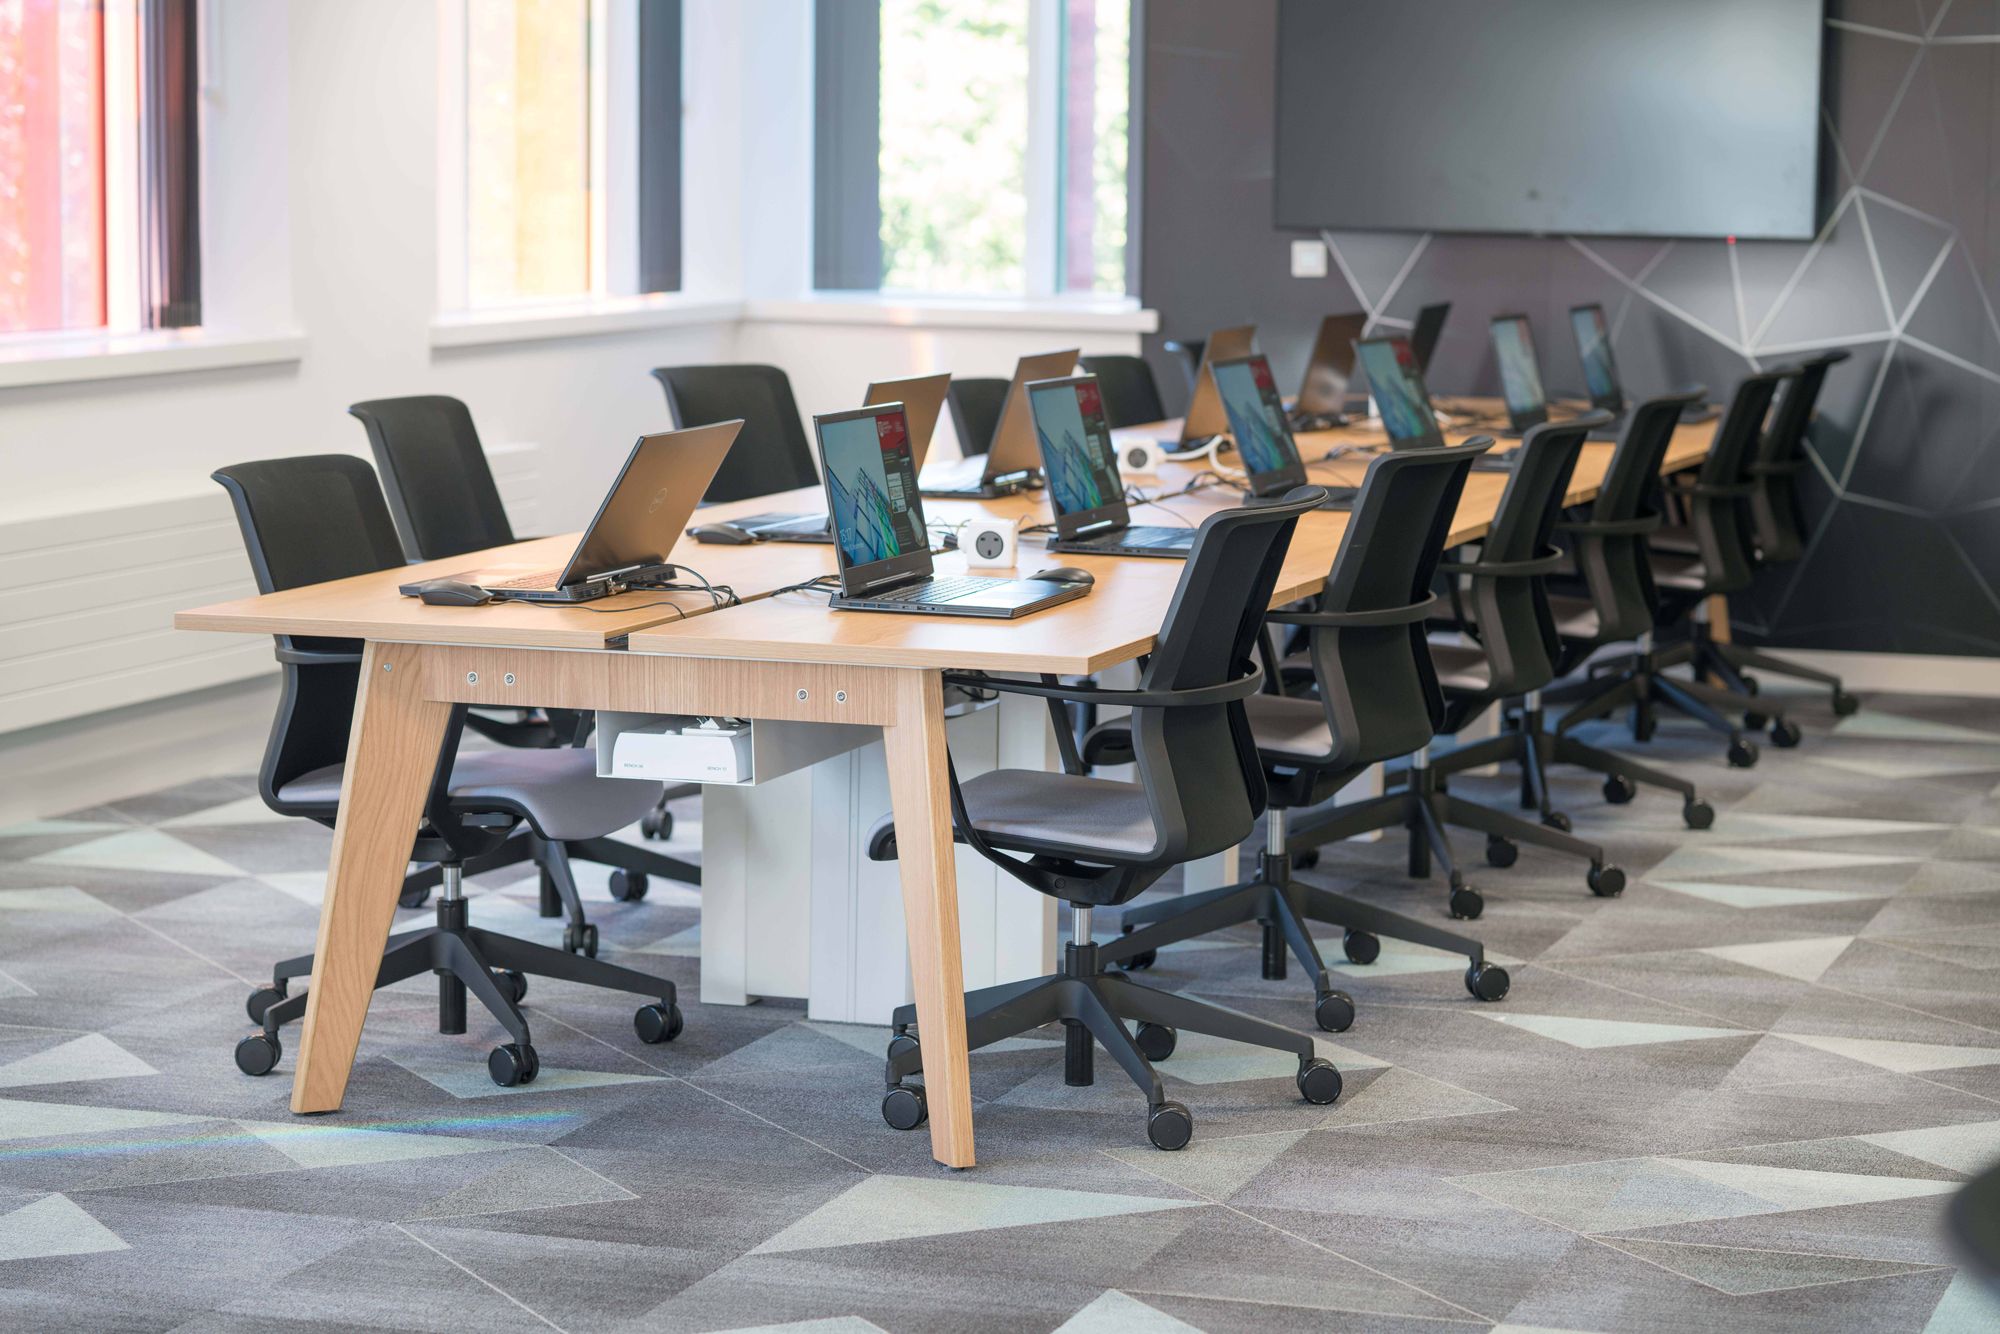 INNOVATIVE MODULAR WORKSTATIONS GROWS IN POPULARITY